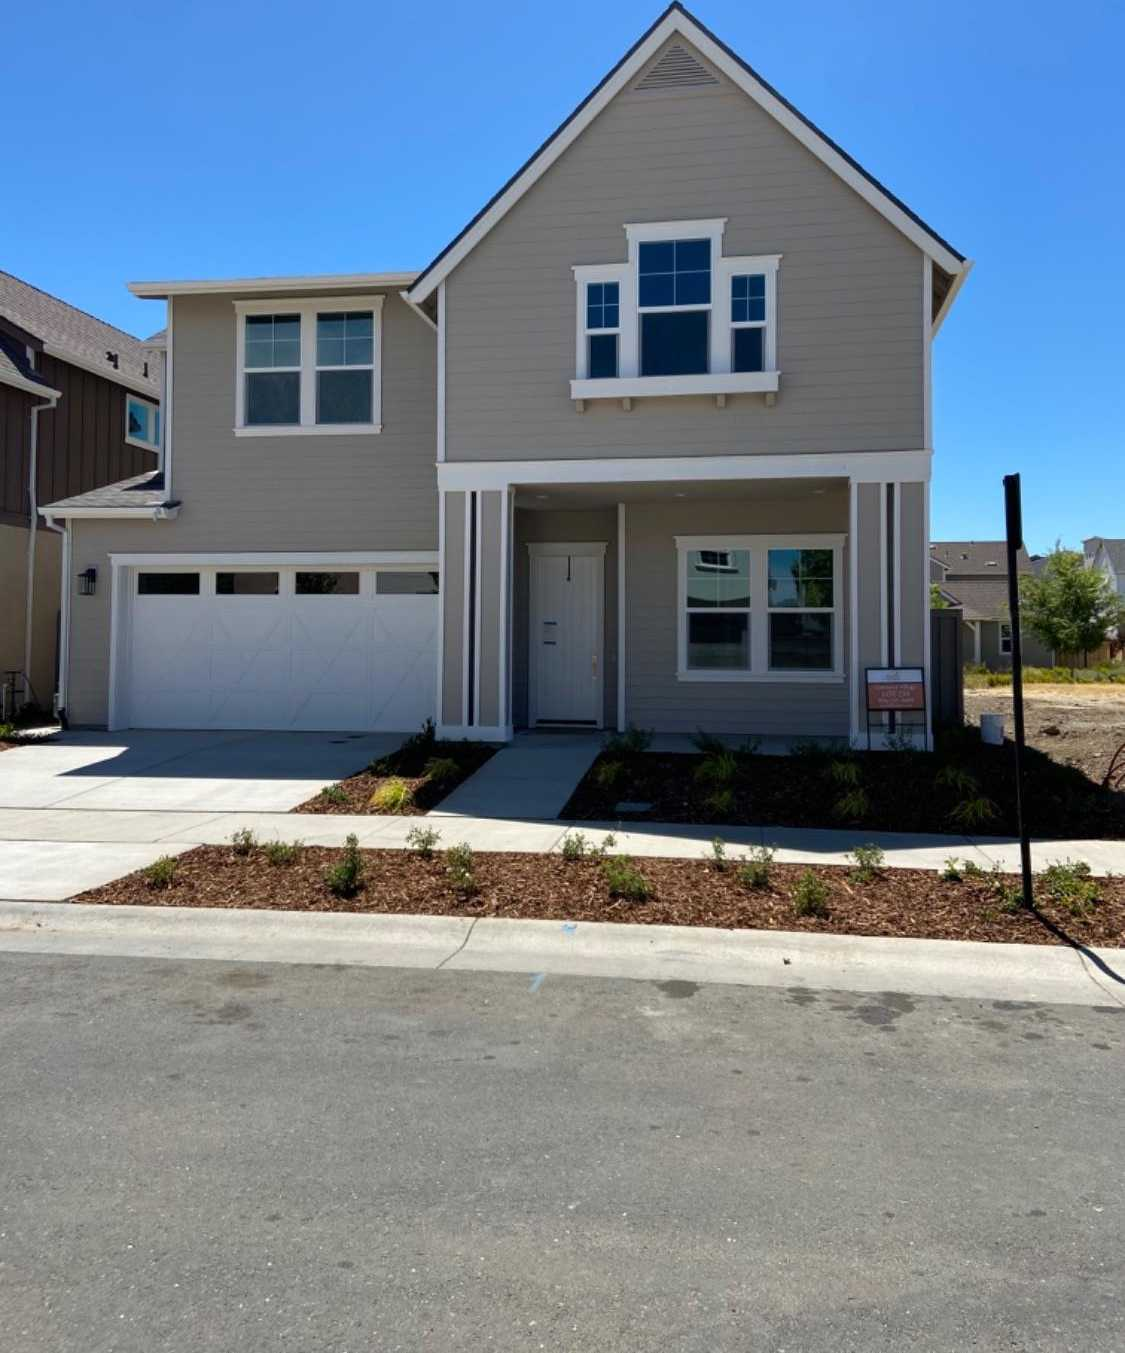 $1,164,900 - 5Br/4Ba -  for Sale in Davis